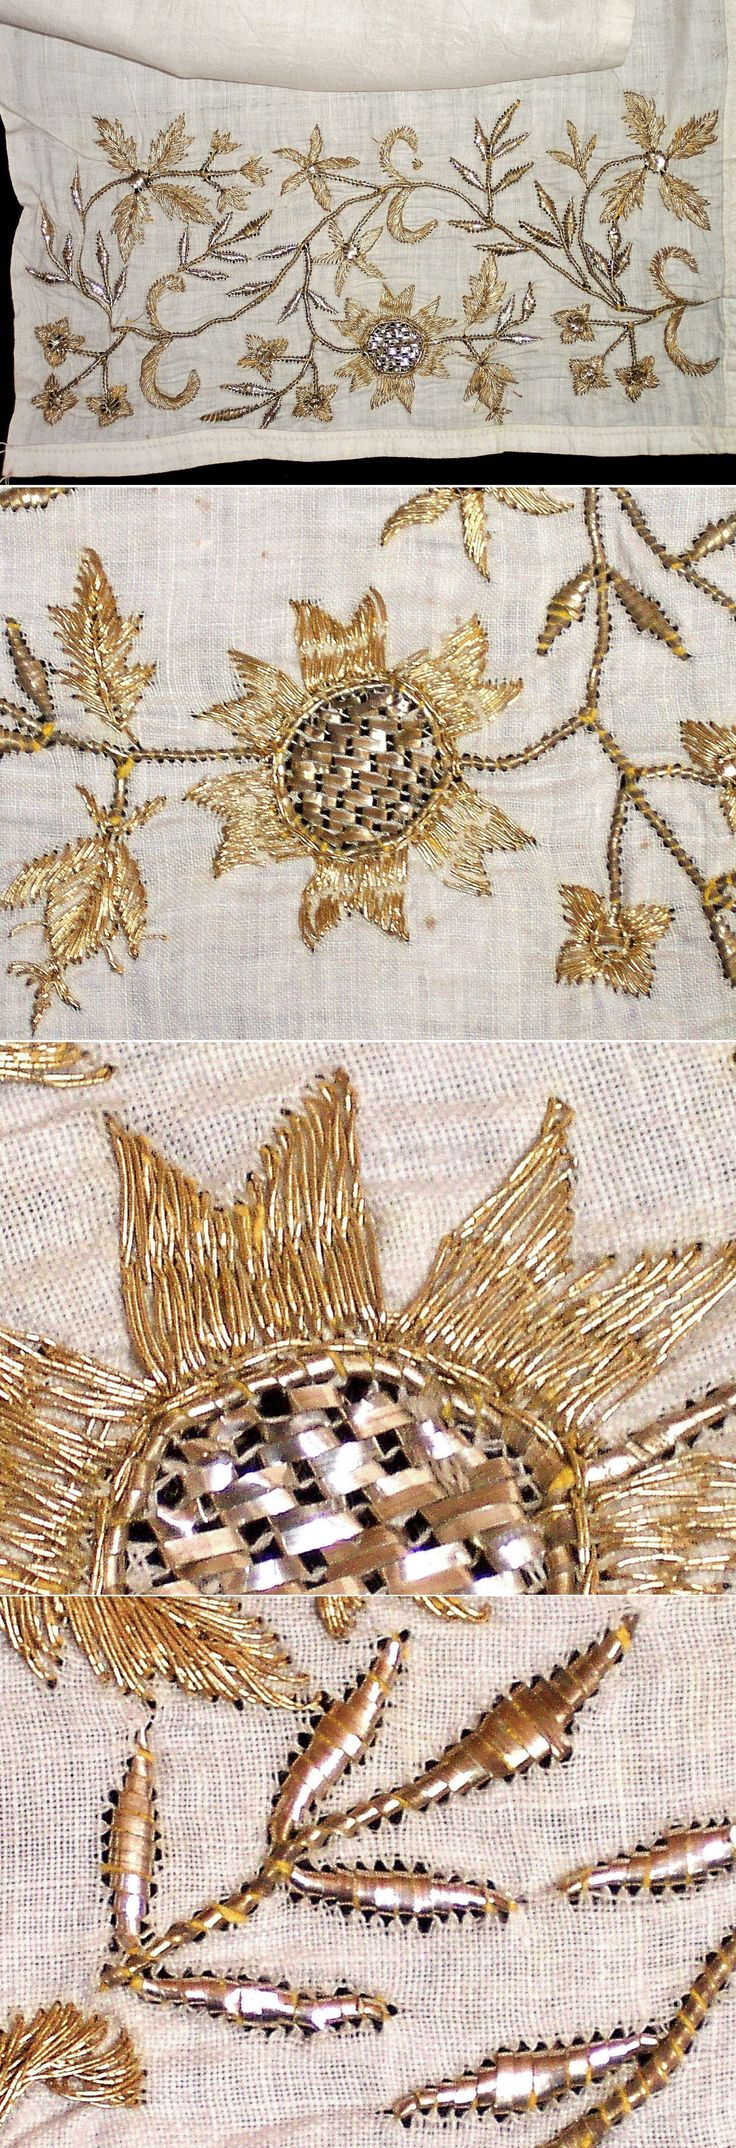 One of both embroidered ends of a woman's uçkur (waistband/sash), + close-ups. From the Bursa region, late 19th c. The embroidery is 'two-sided' (identical on both sides of the fabric) and is executed in both 'golden' metallic thread and 'tel kırma' (motives obtained by sticking narrow metallic strips – often silver - through the fabric and folding them.). (Inv.nr. brdw038 - Kavak Costume Collection - Antwerpen/Belgium).